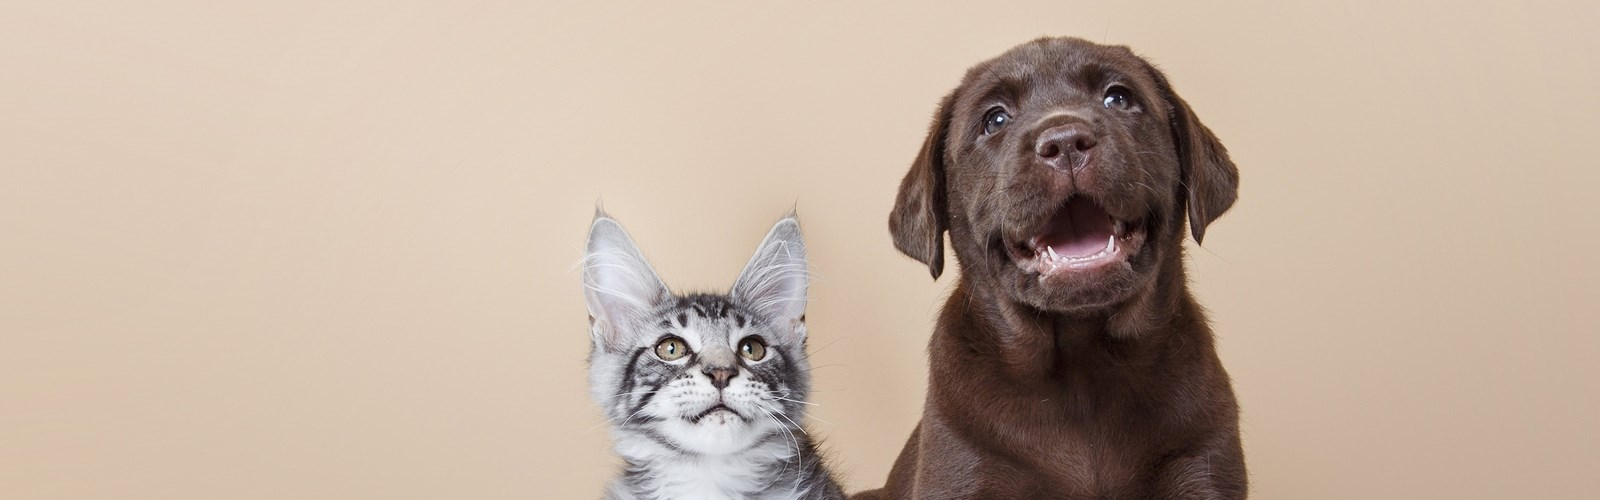 Black and white cat sitting next to chocolate lab